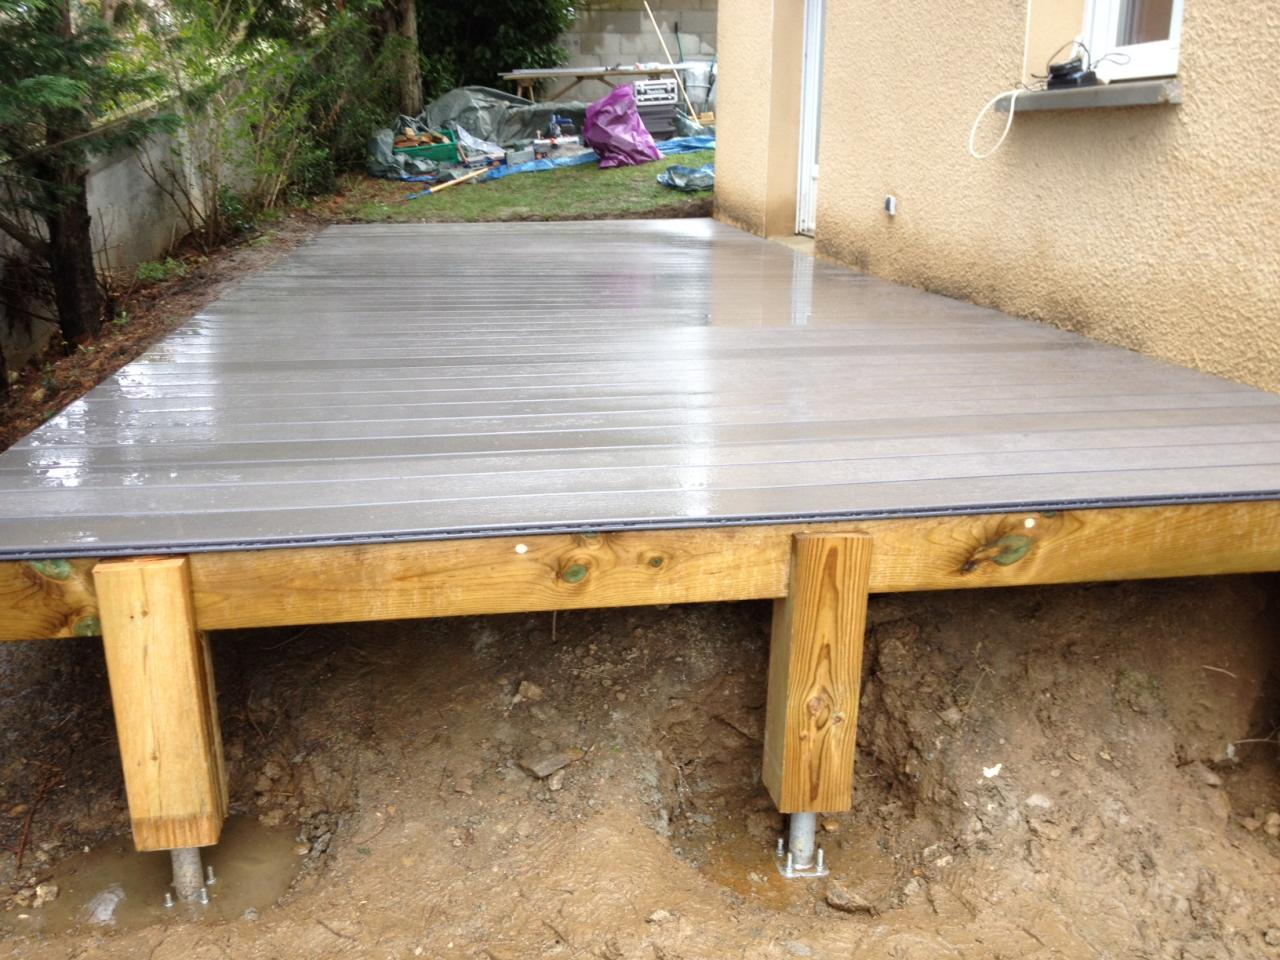 Nettoyer Terrasse Carrelage Of Nettoyer Terrasse Bois Javel